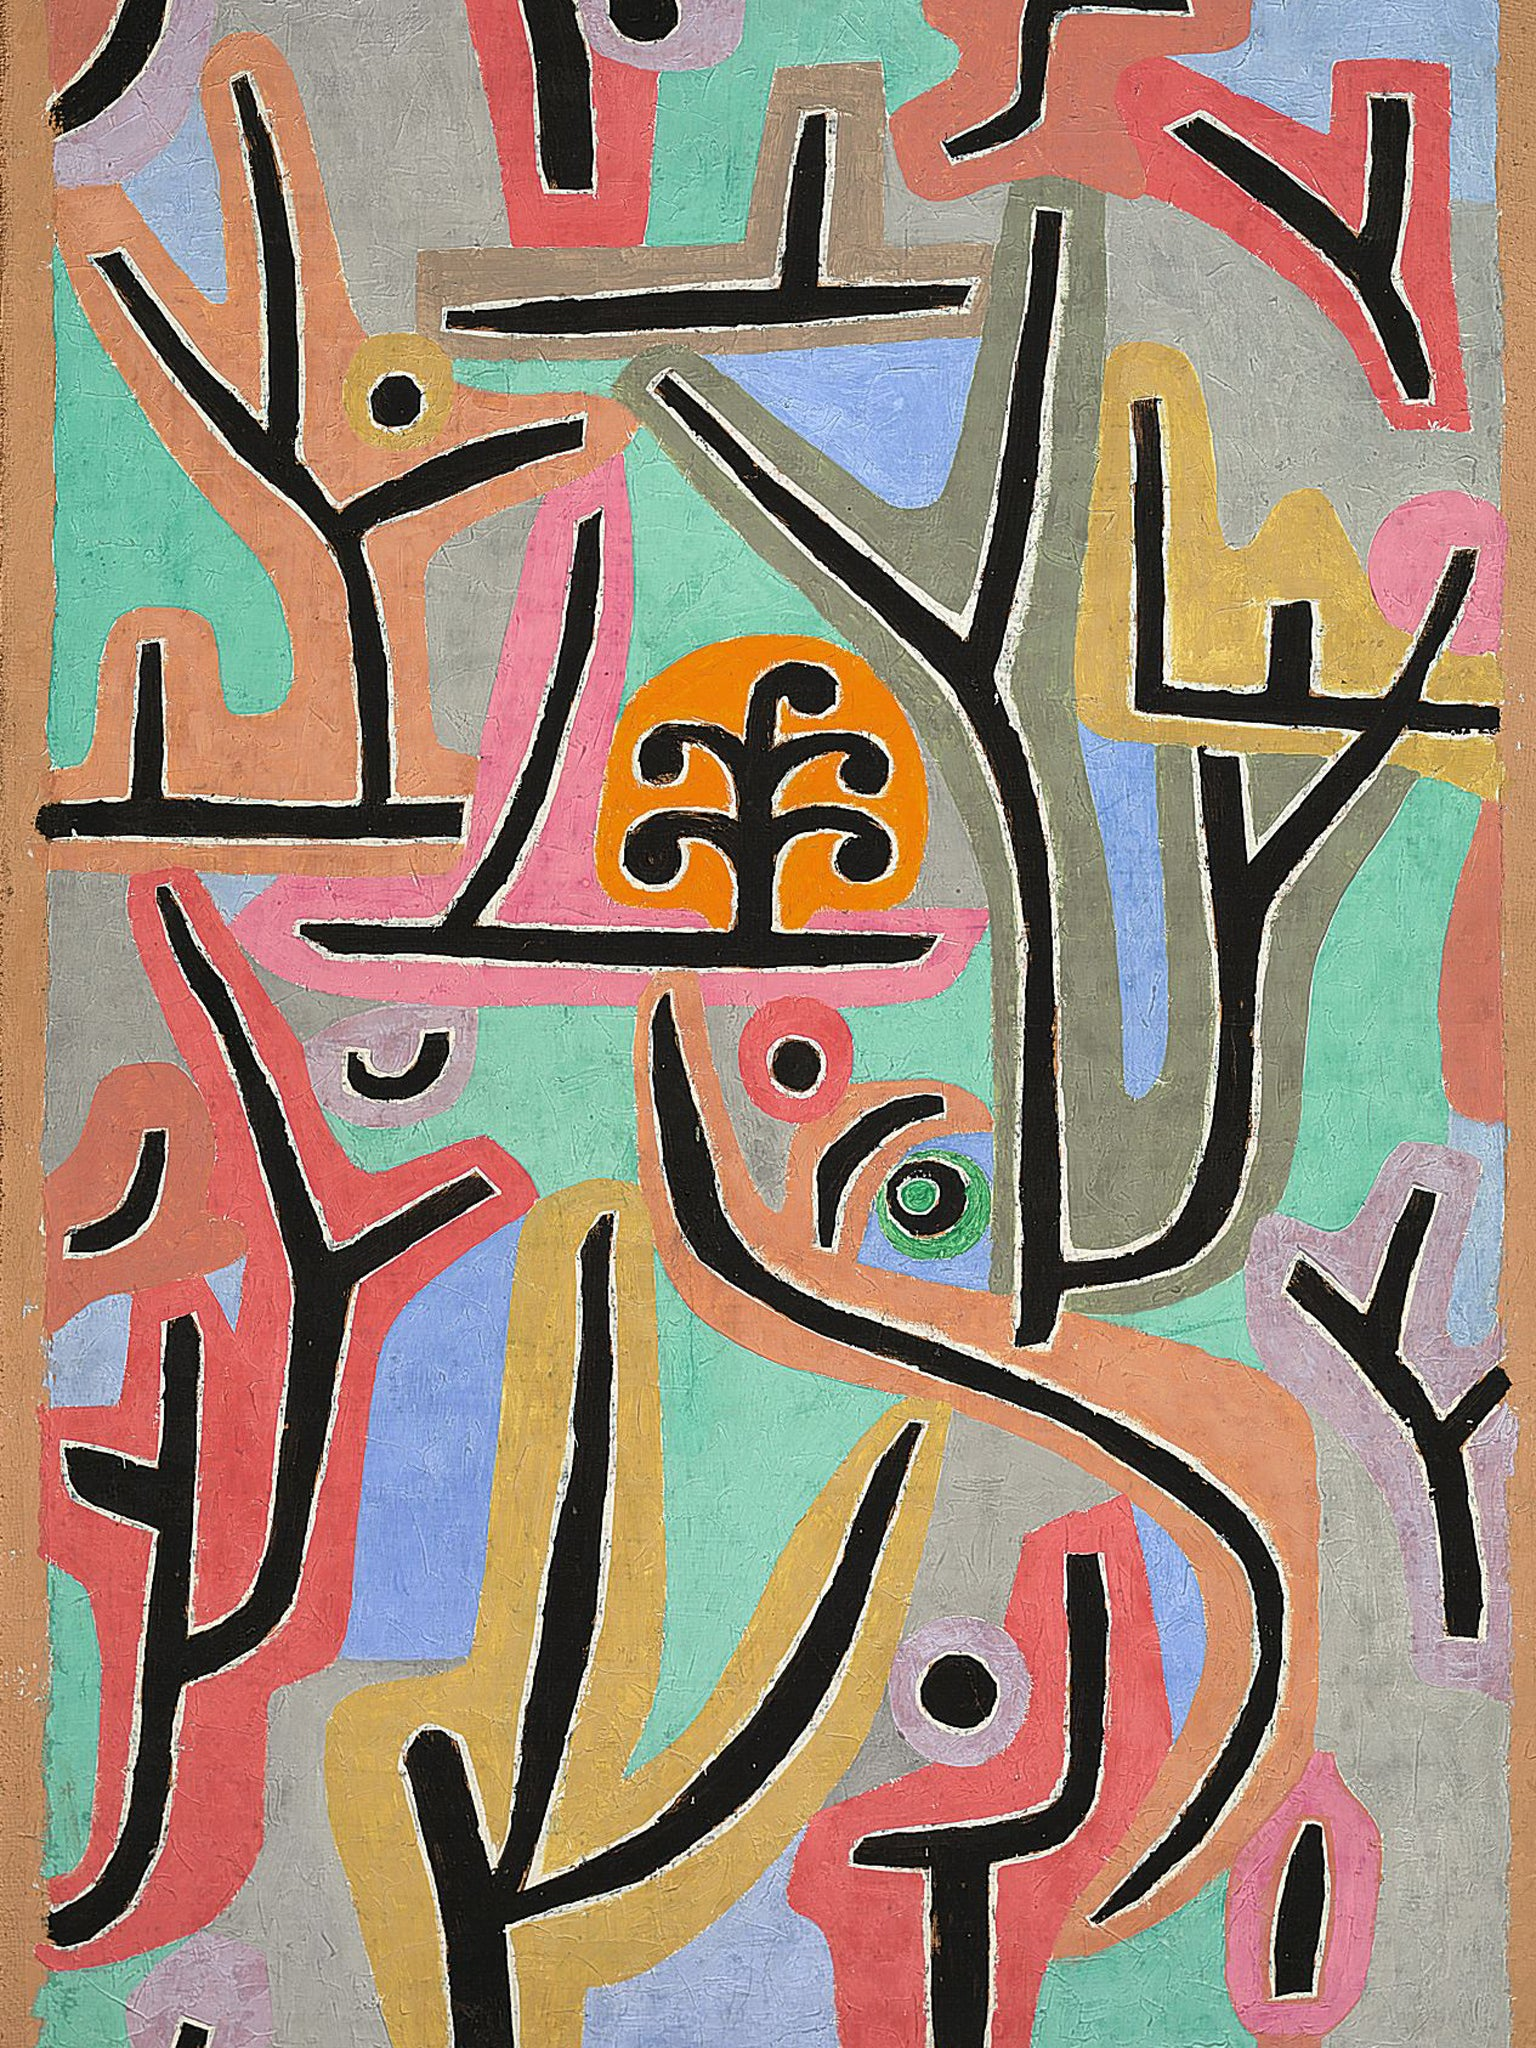 Paul Klee: Triumph of a 'degenerate' | The Independent